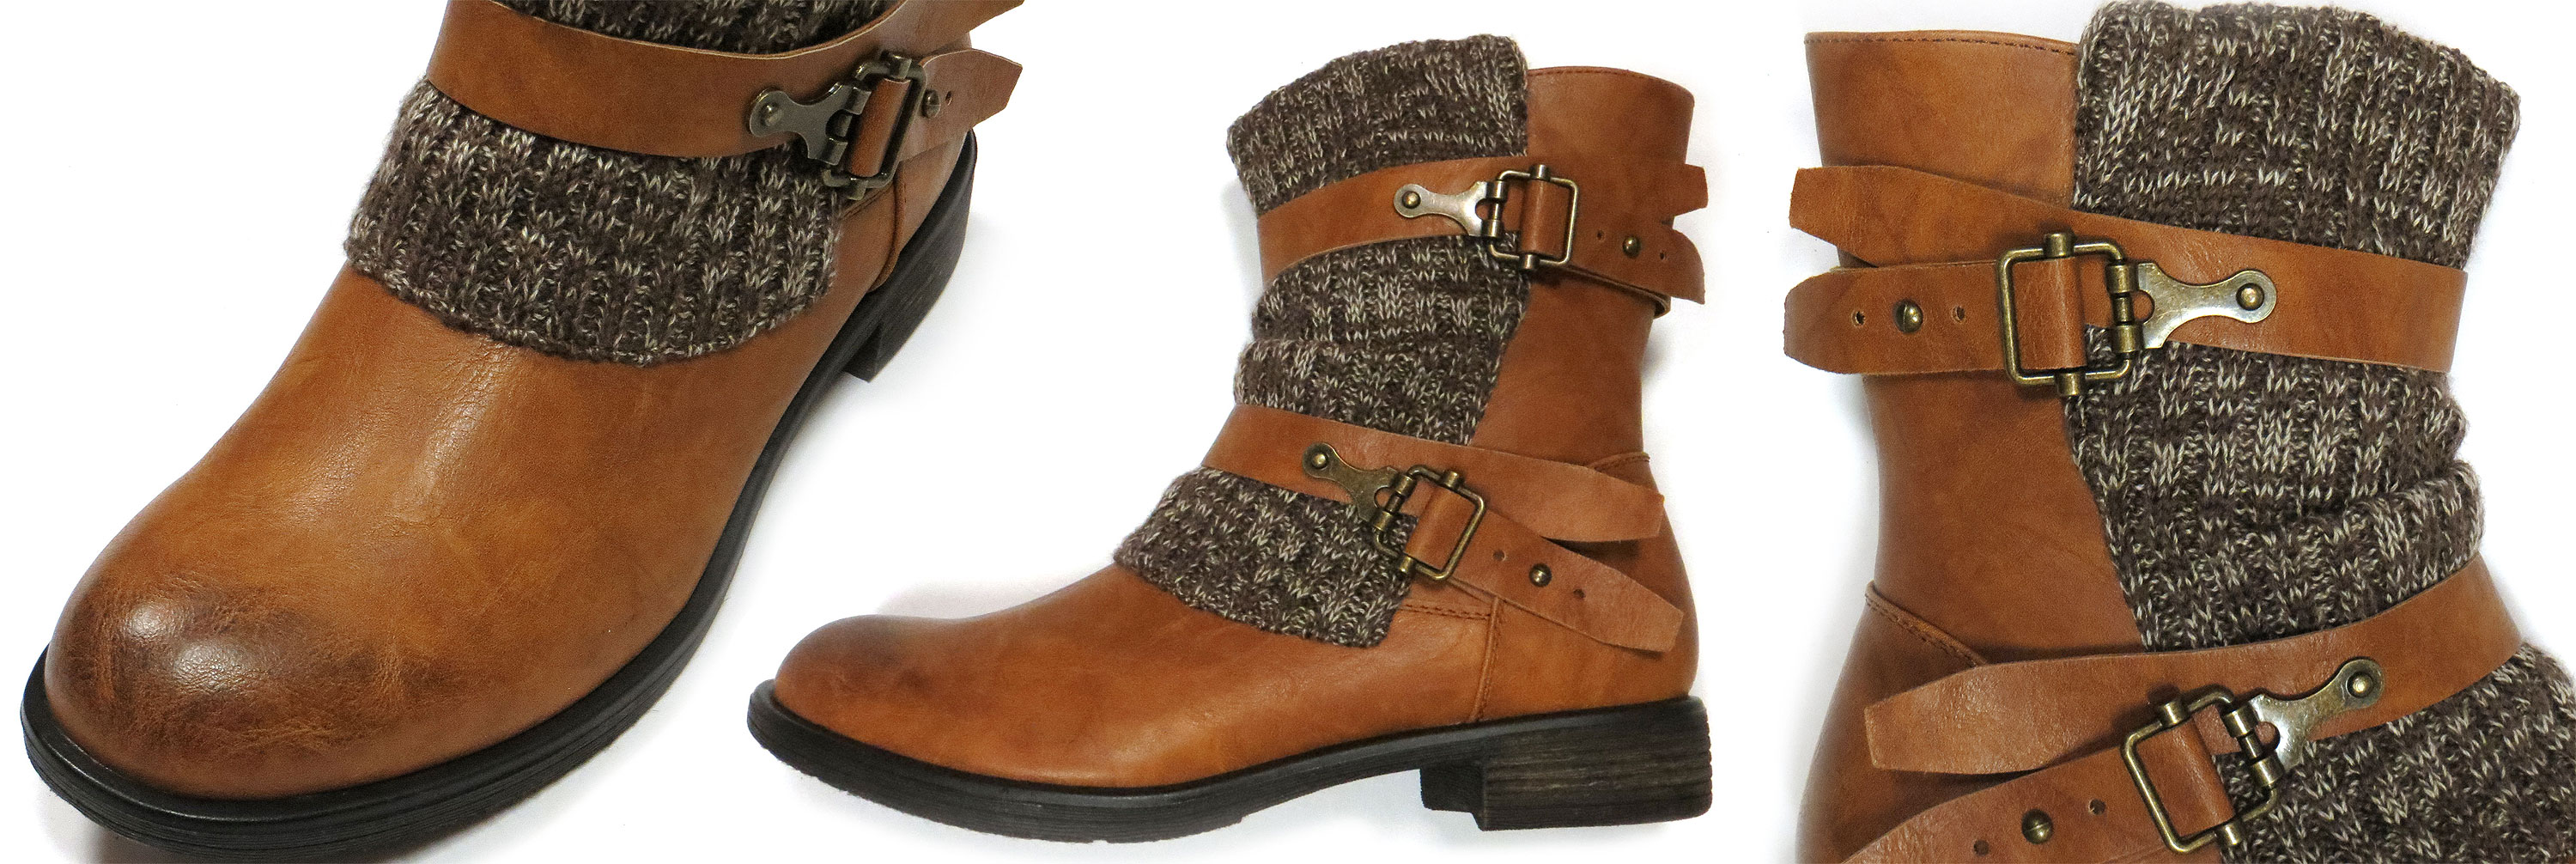 Knit Cuff Buckle Boots